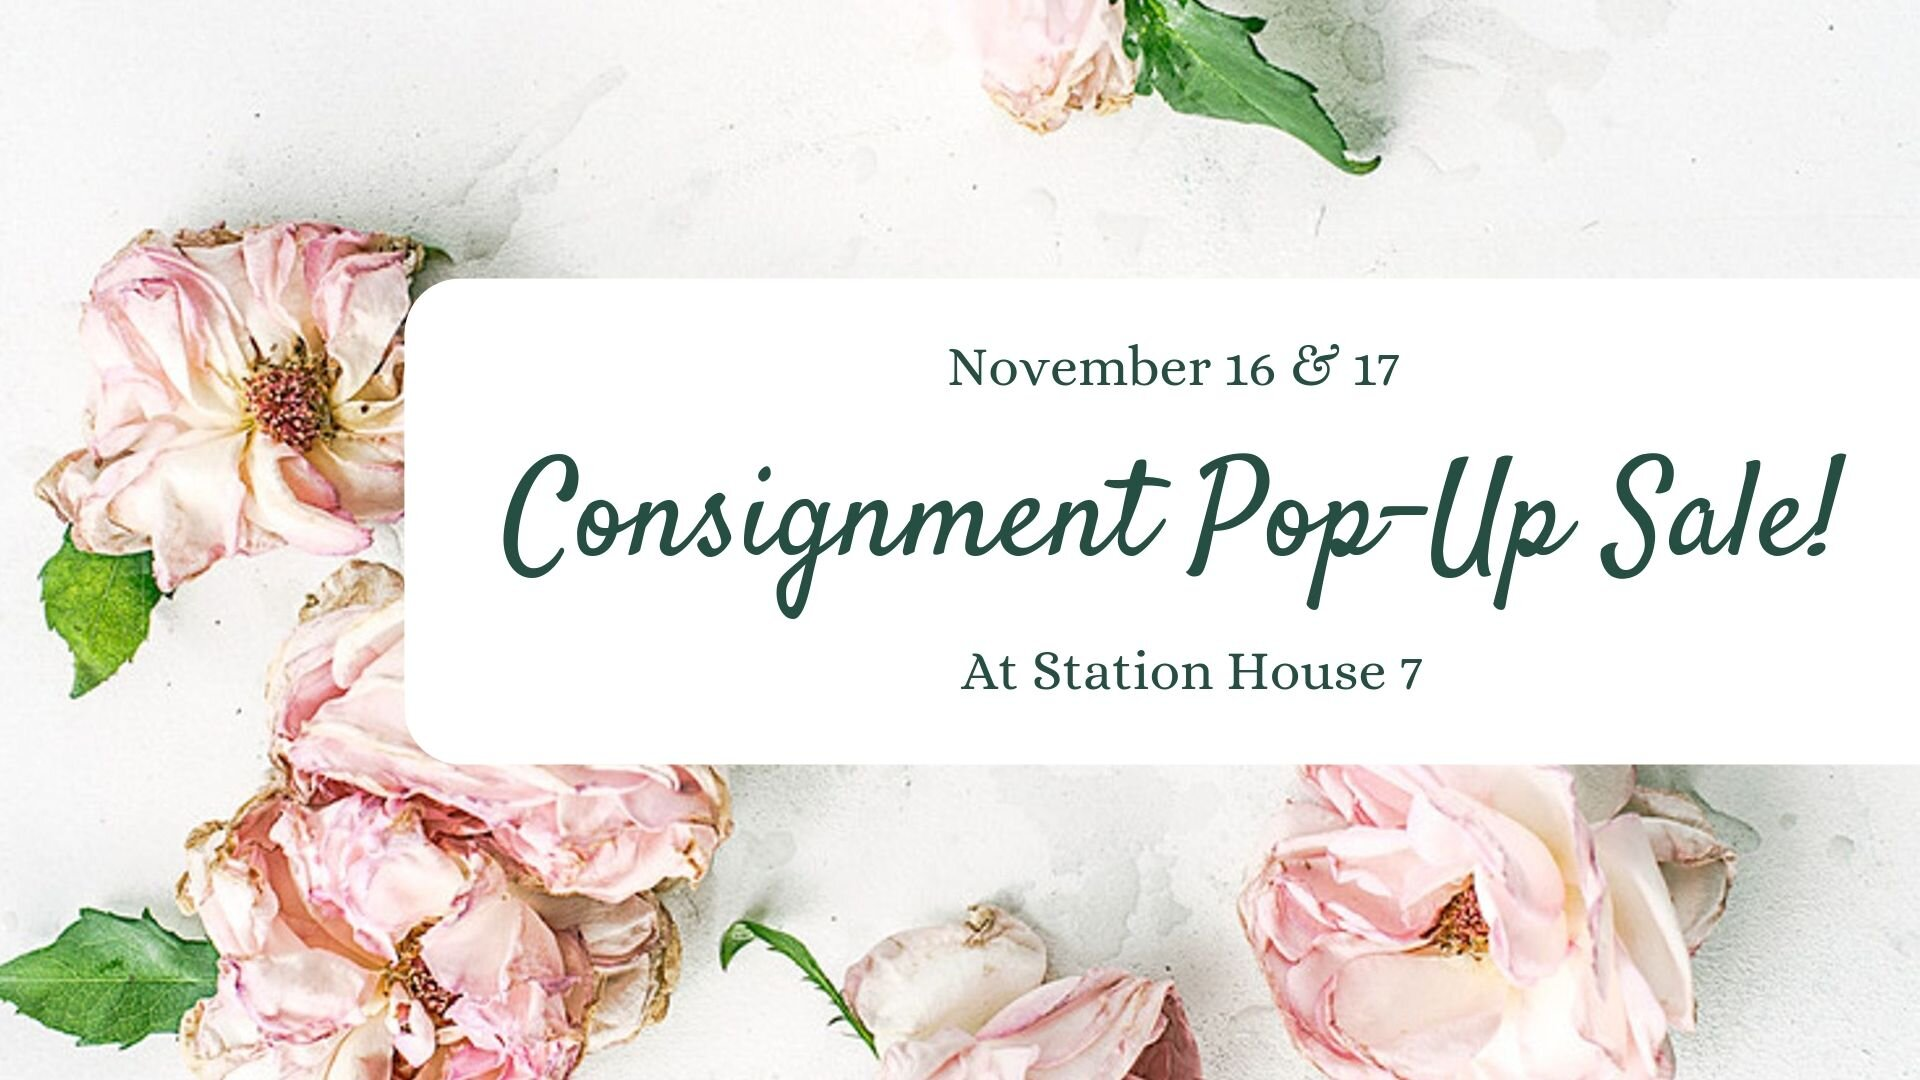 Consignment Pop-Up Sale!-4.jpg